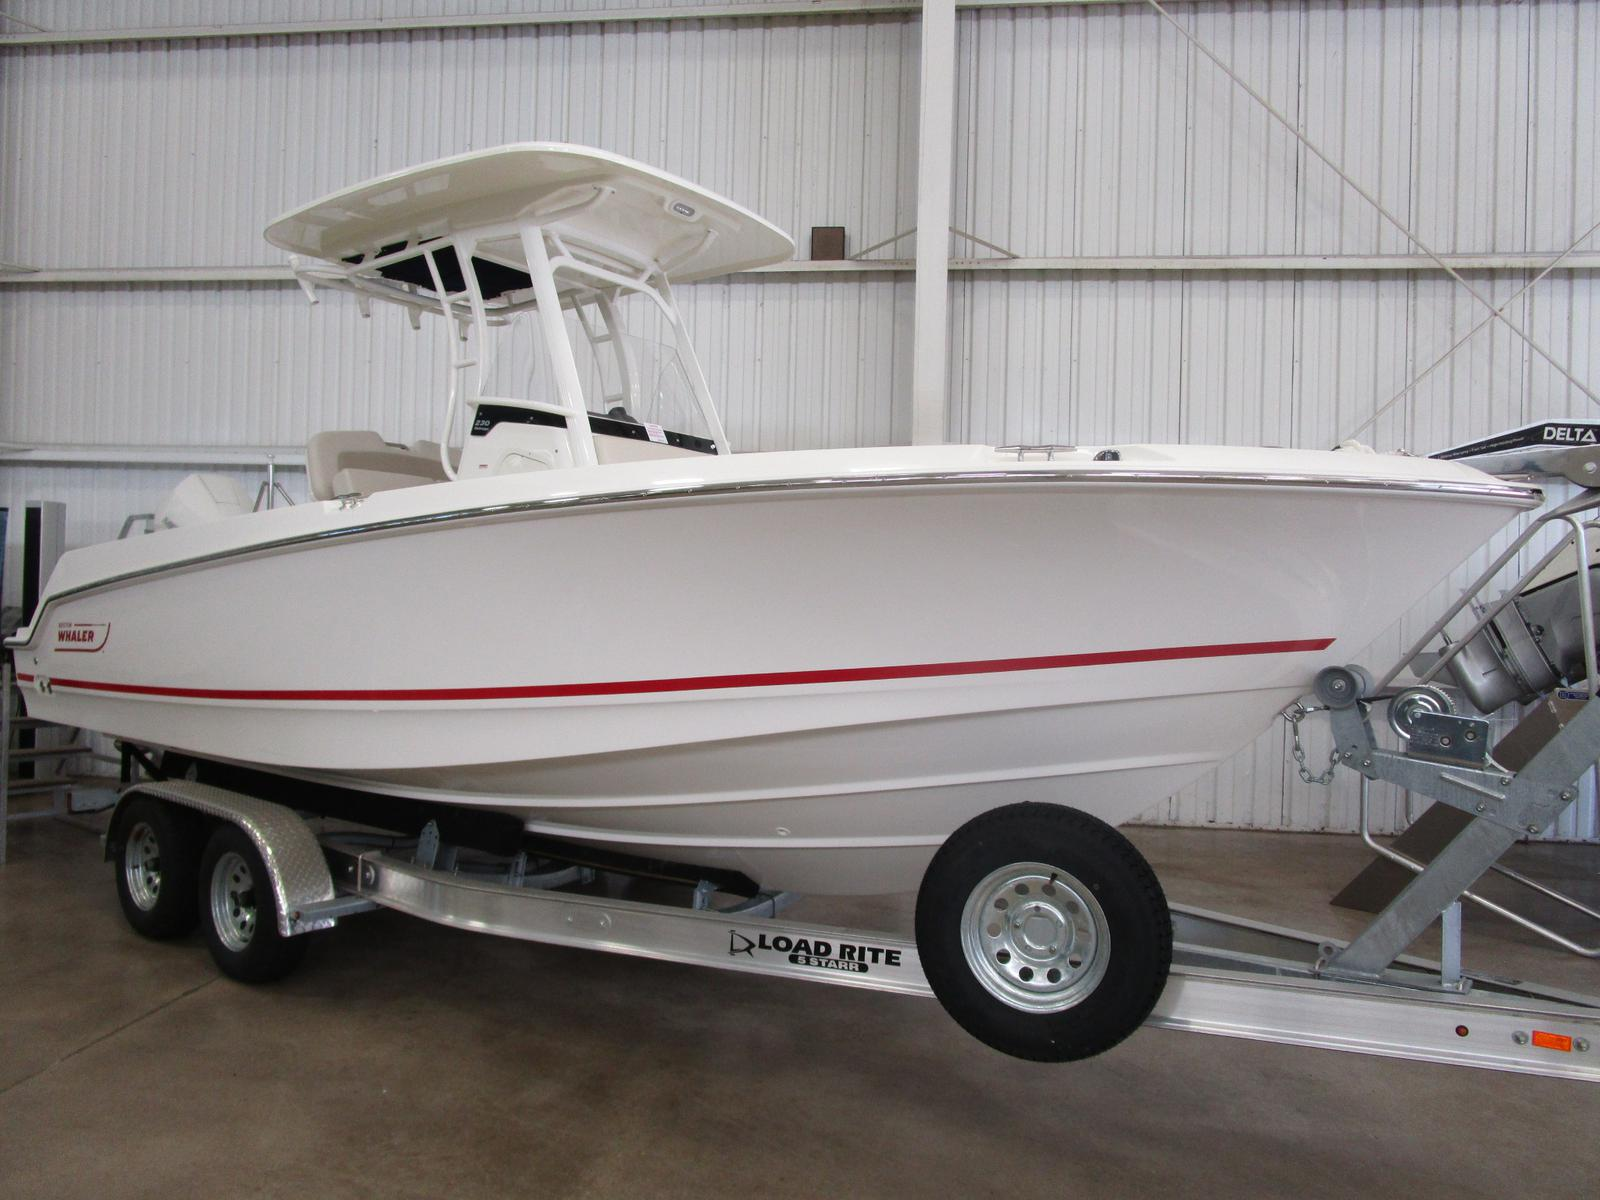 2019 Boston Whaler boat for sale, model of the boat is 230 Outrage & Image # 4 of 10